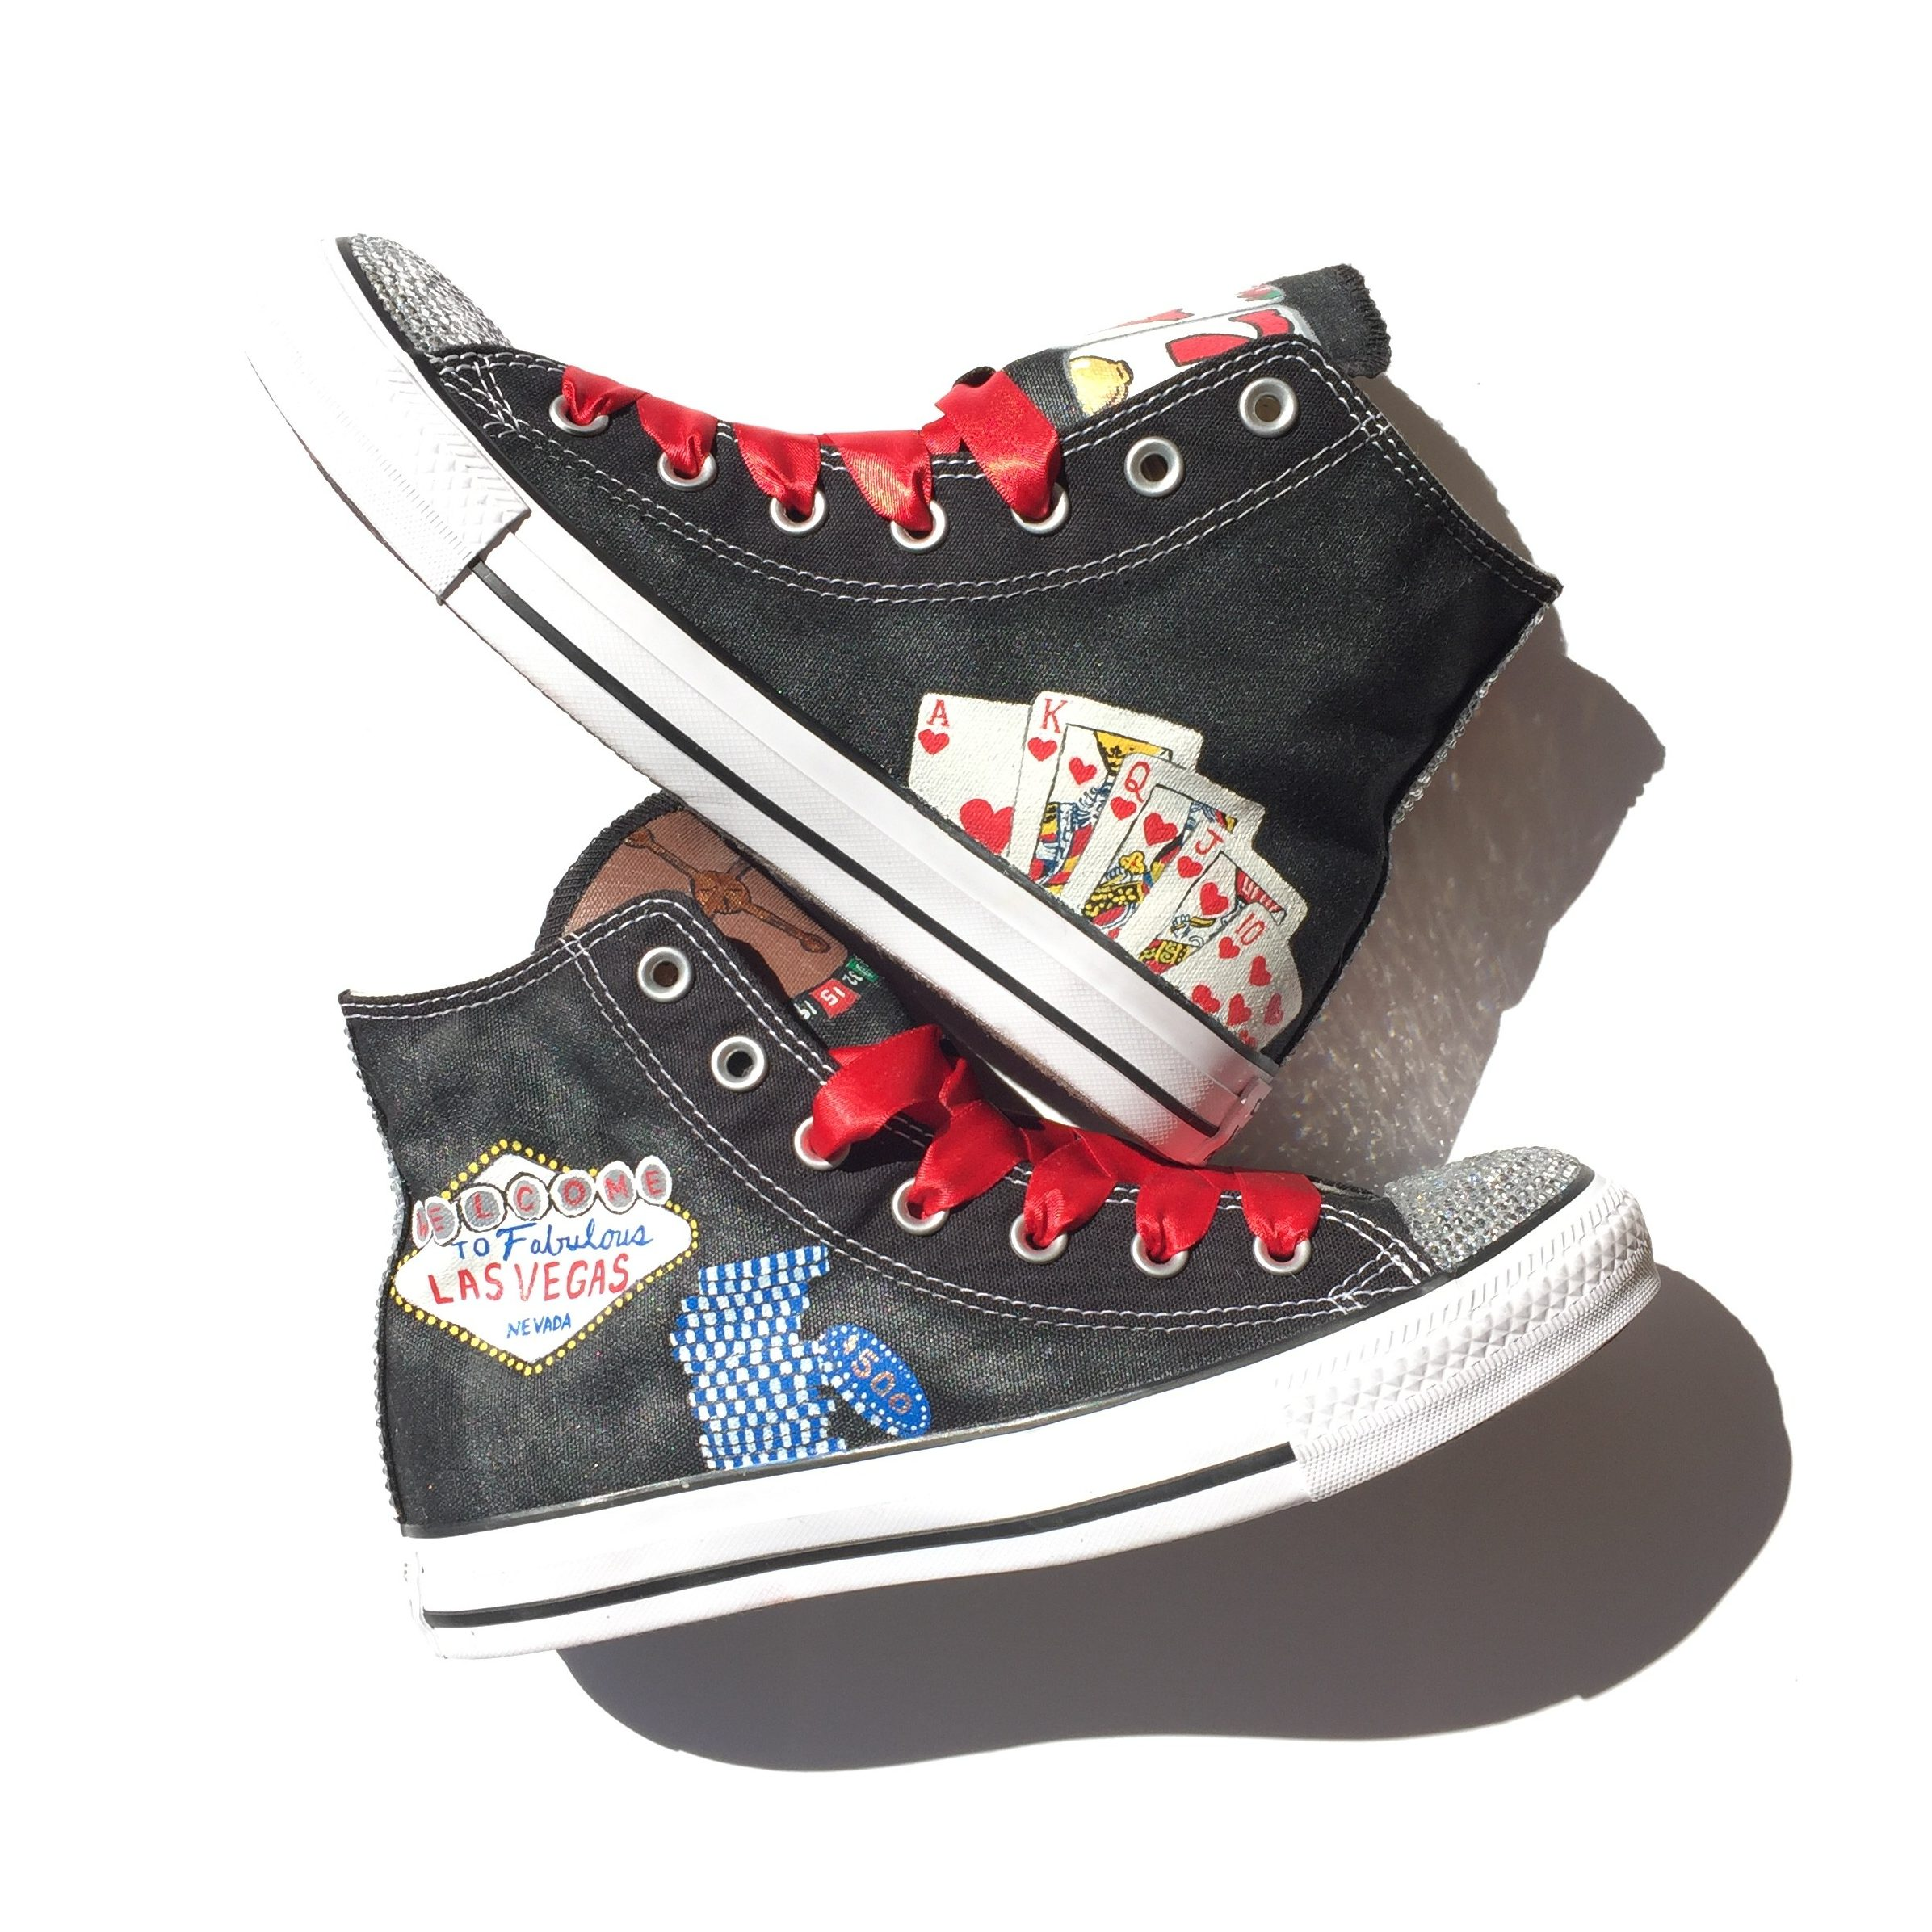 968791ff3b64 Las Vegas Themed Custom Converse